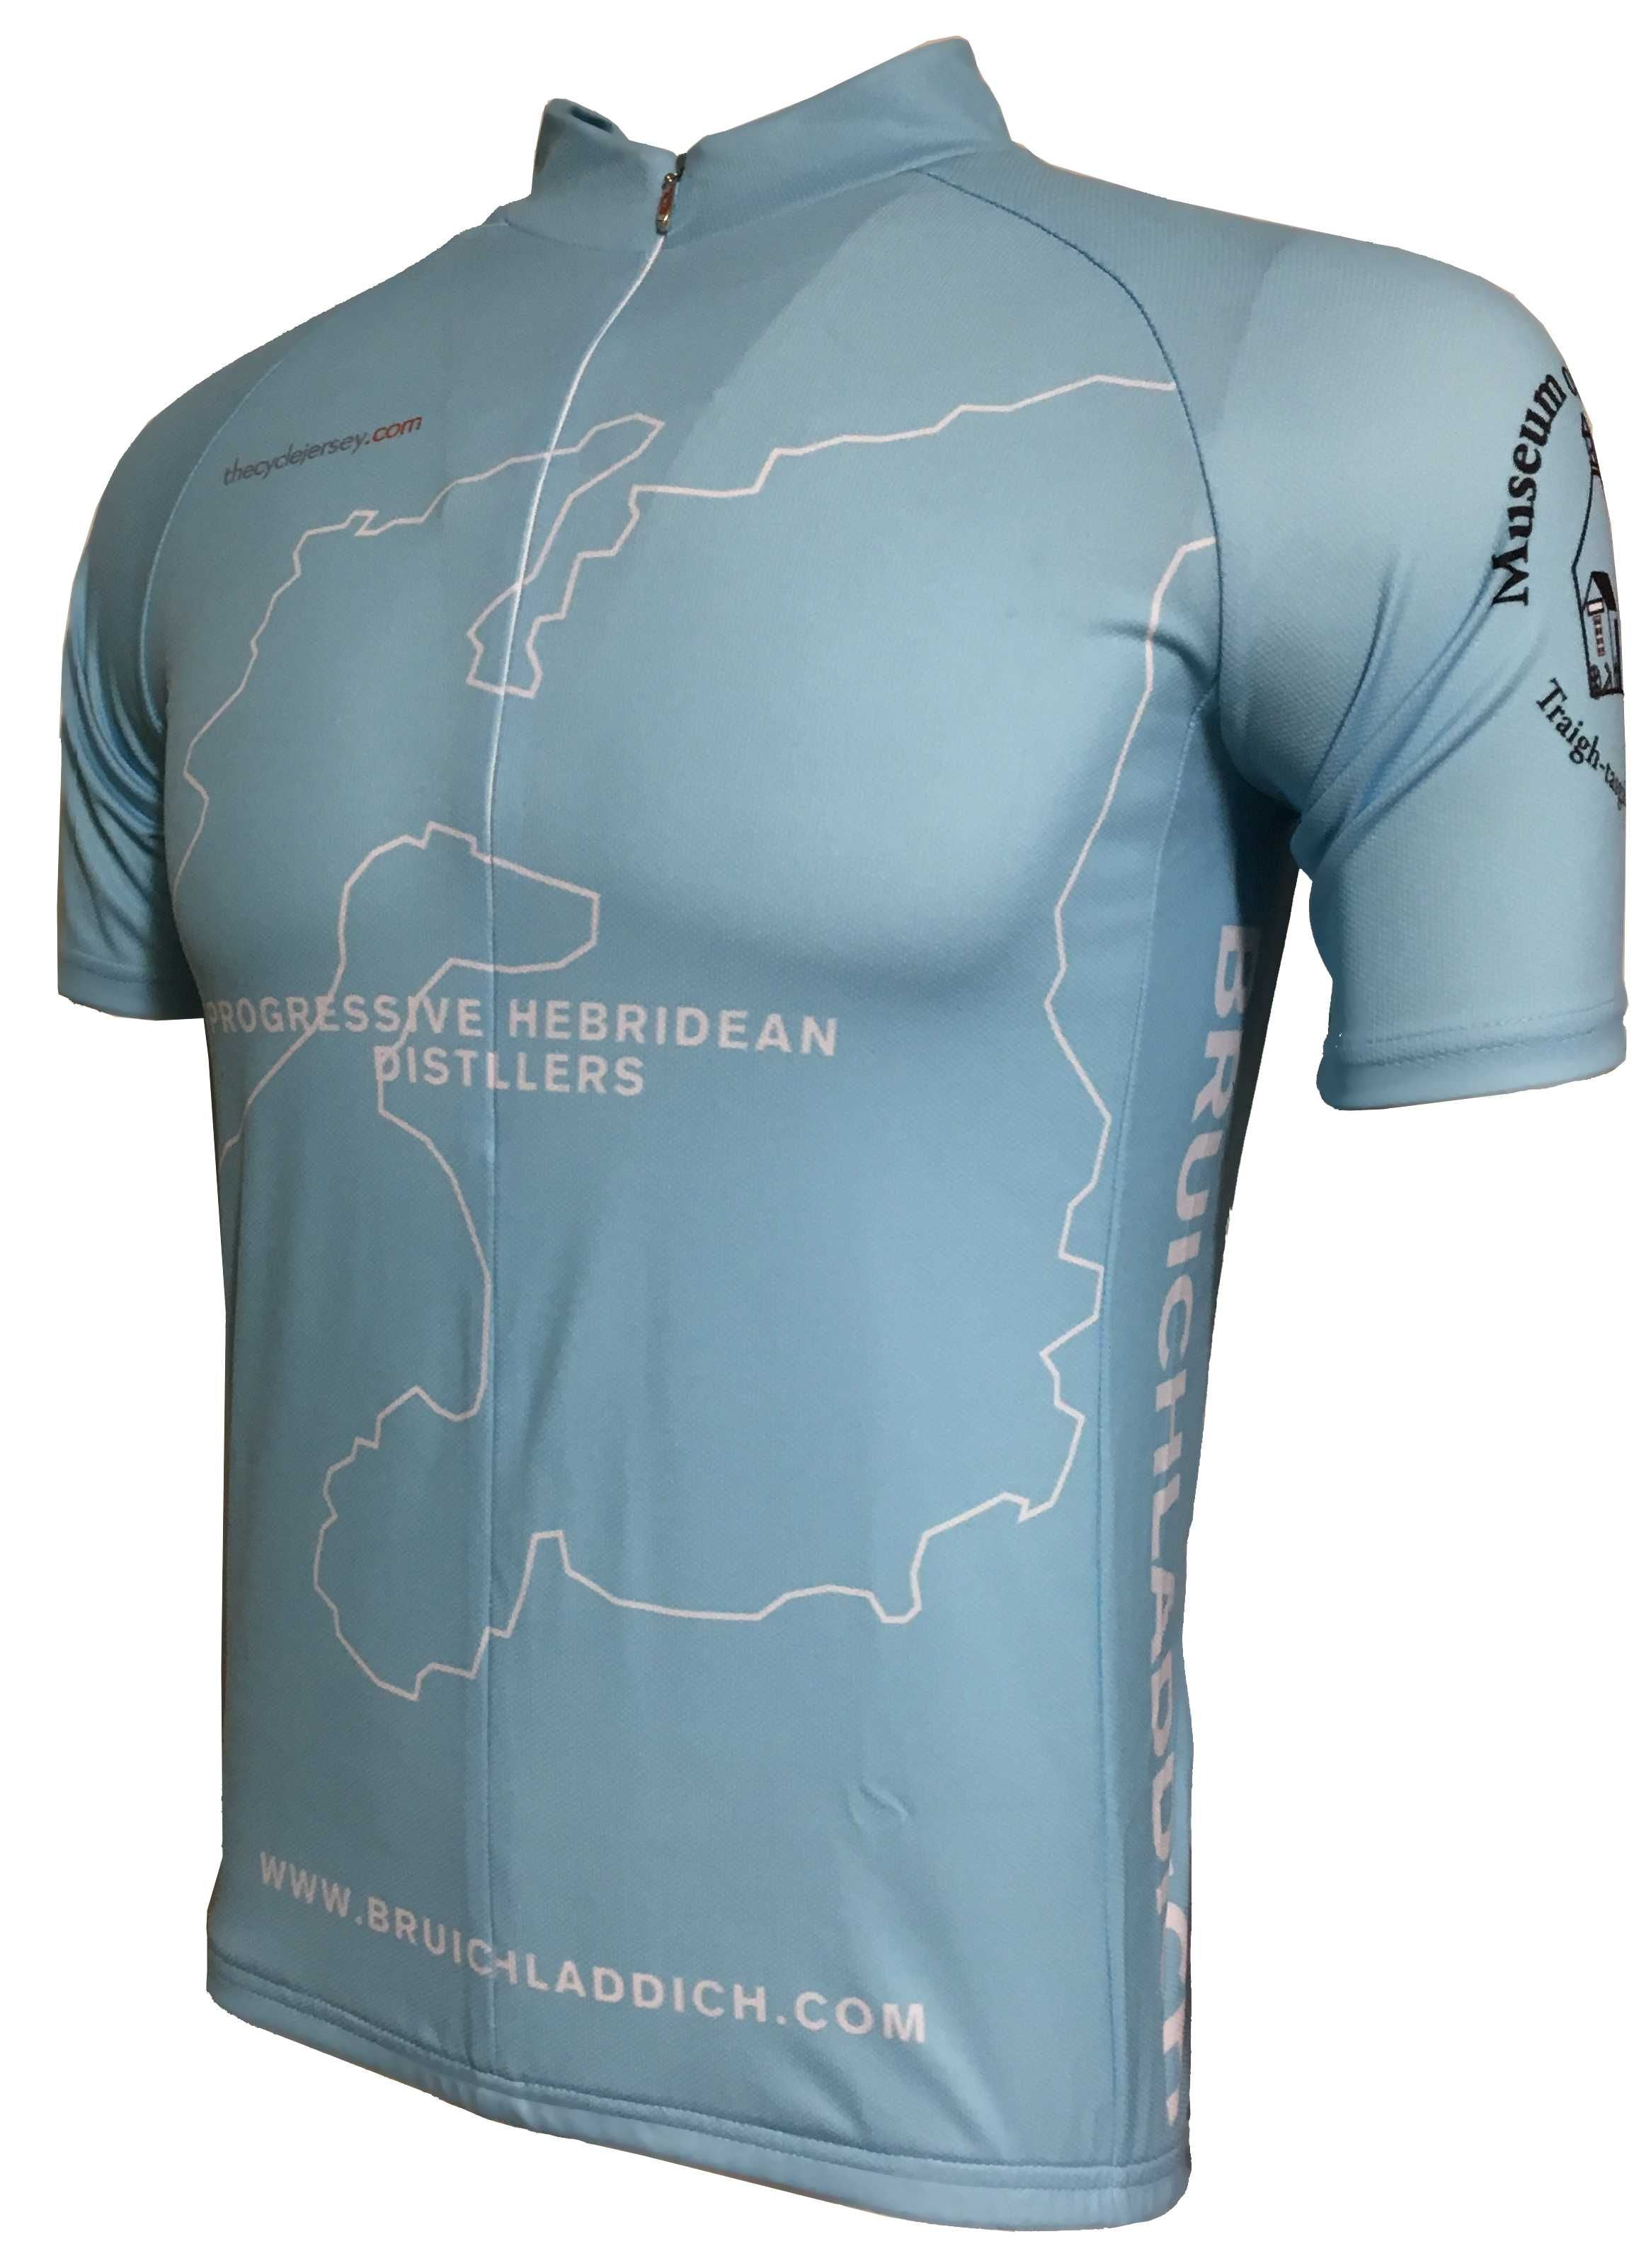 Bruichladdich Original Road Cycle Jersey Front